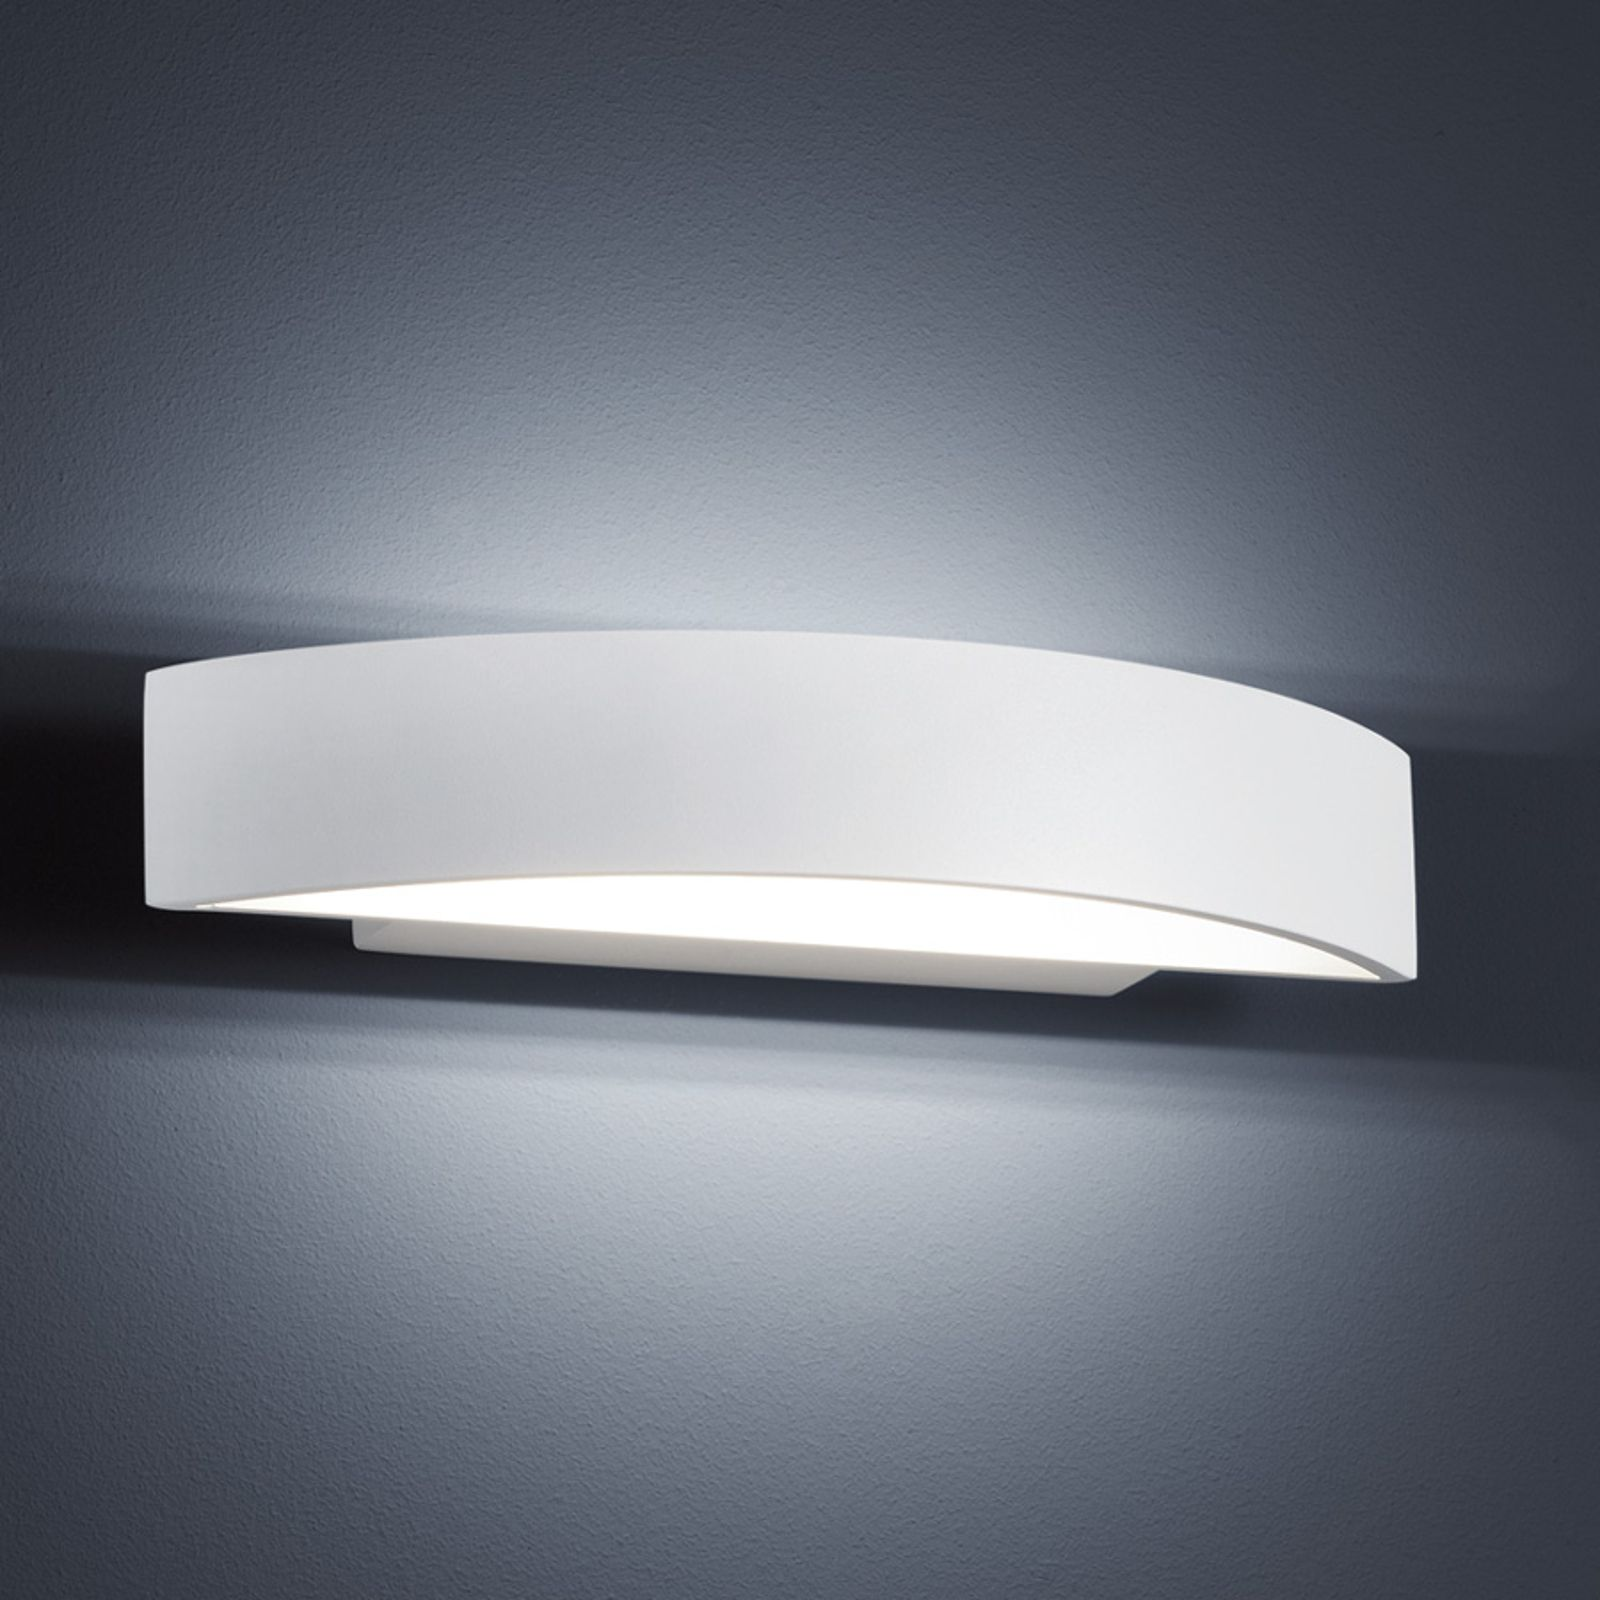 Impressive LED wall light Yona The LED wall light Yona charms with a modern look and energy-efficient operation. The rounded, simple design of the light is subtle and thus, harmoniously blends with the existing interior. It emits ambient light upwards and downwards, without any glare. It can be used in various rooms. With an output of about 1,320 lumens, it still provides bright light in a lovely warm white colour. Energy efficiency class:A+